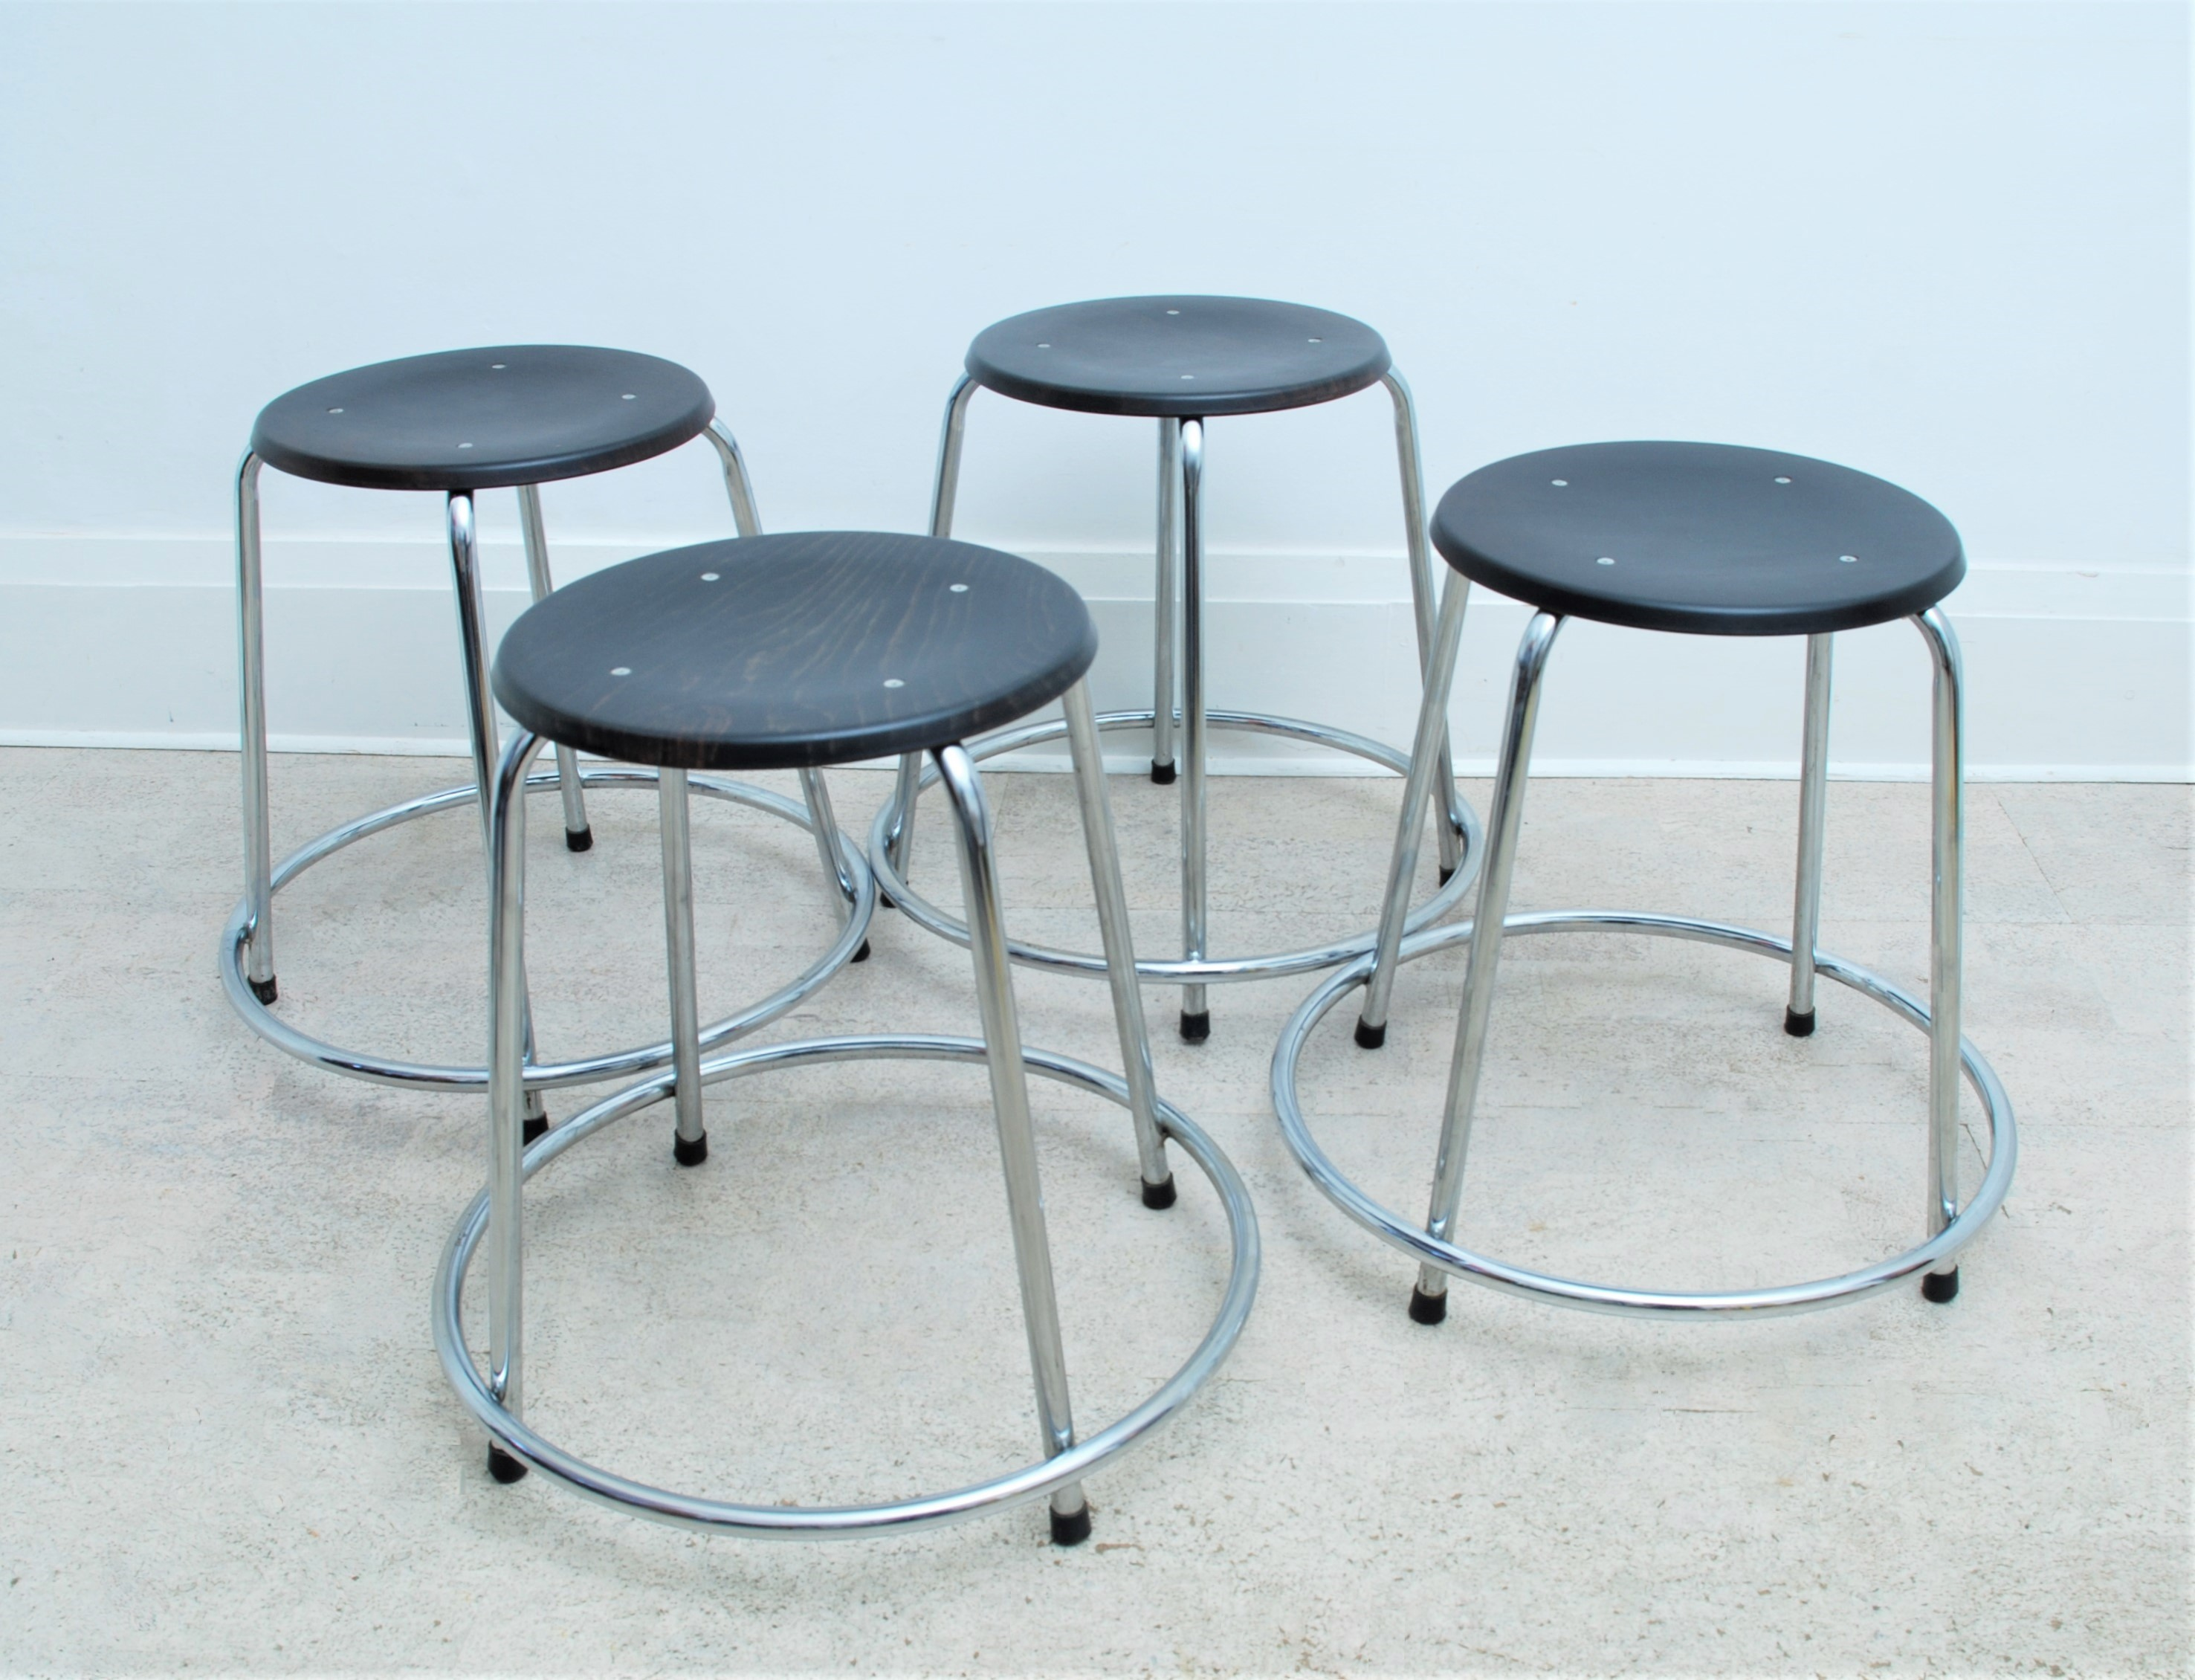 1970's SET OF 4 German Stools